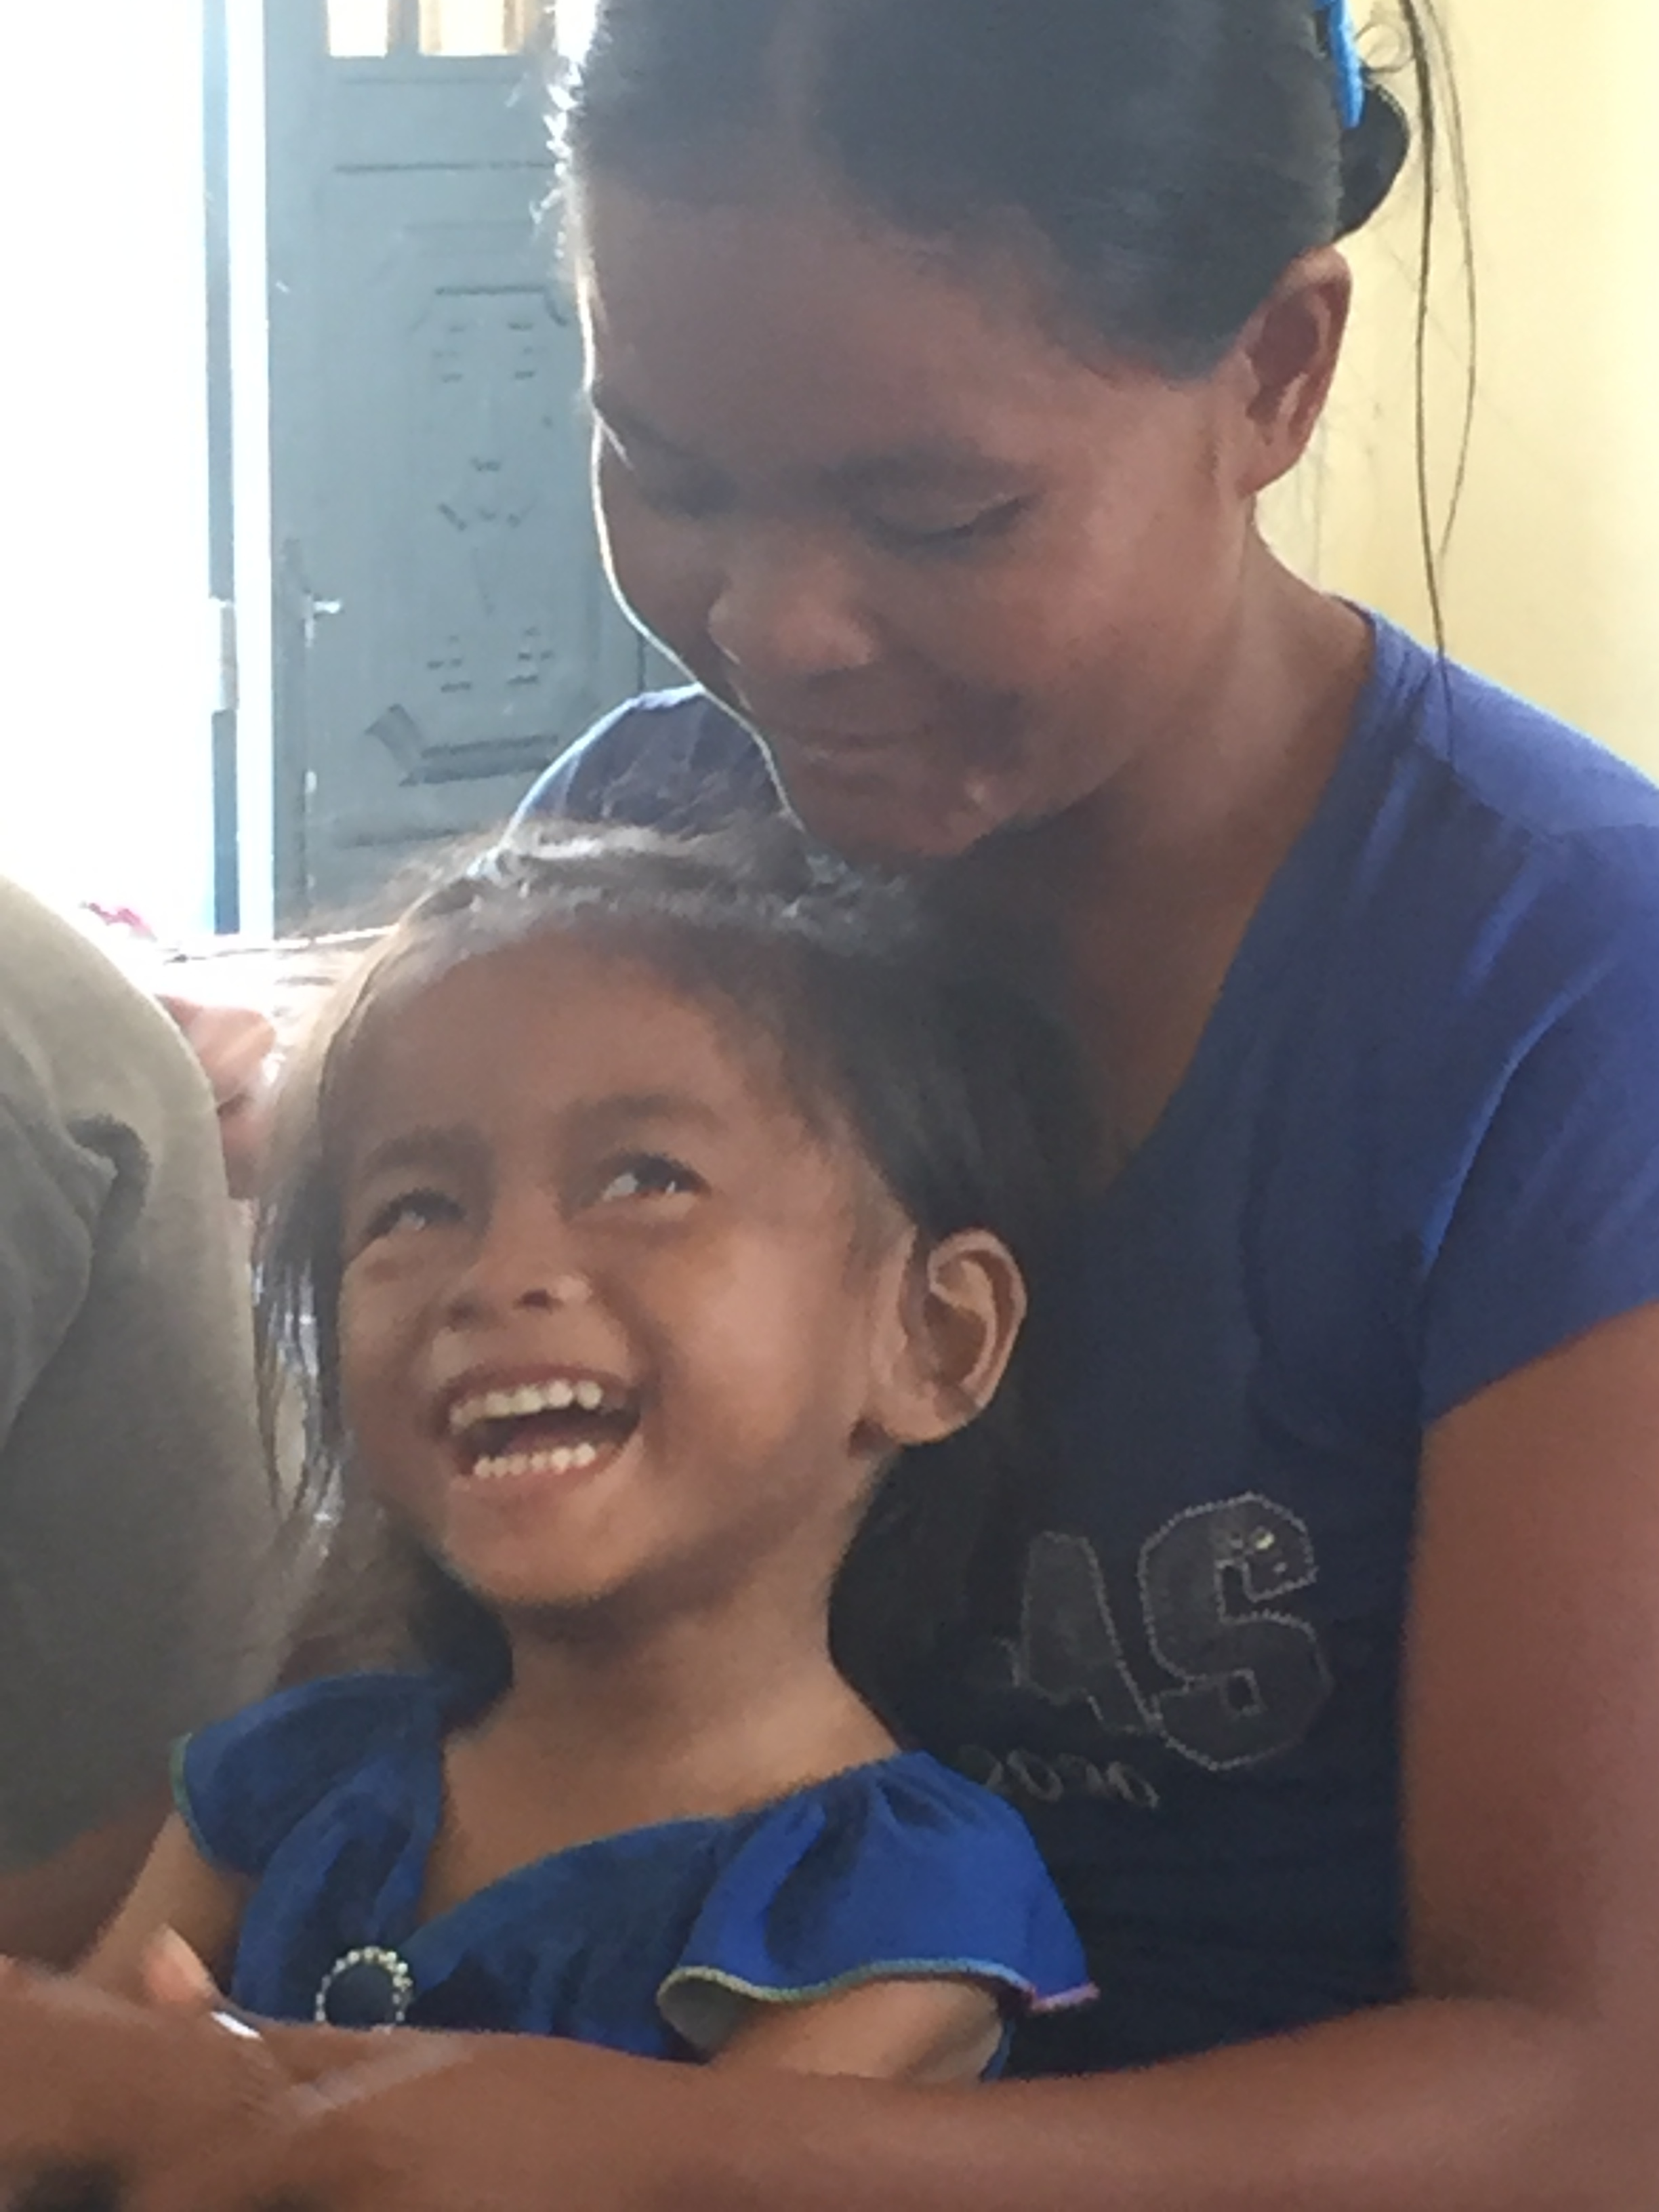 The best part of worshiping with the ladies of LandMine Design has been watching Ganya break into a smile each time. How I long for heaven when the chains that hold her body captive are broken and she is free!